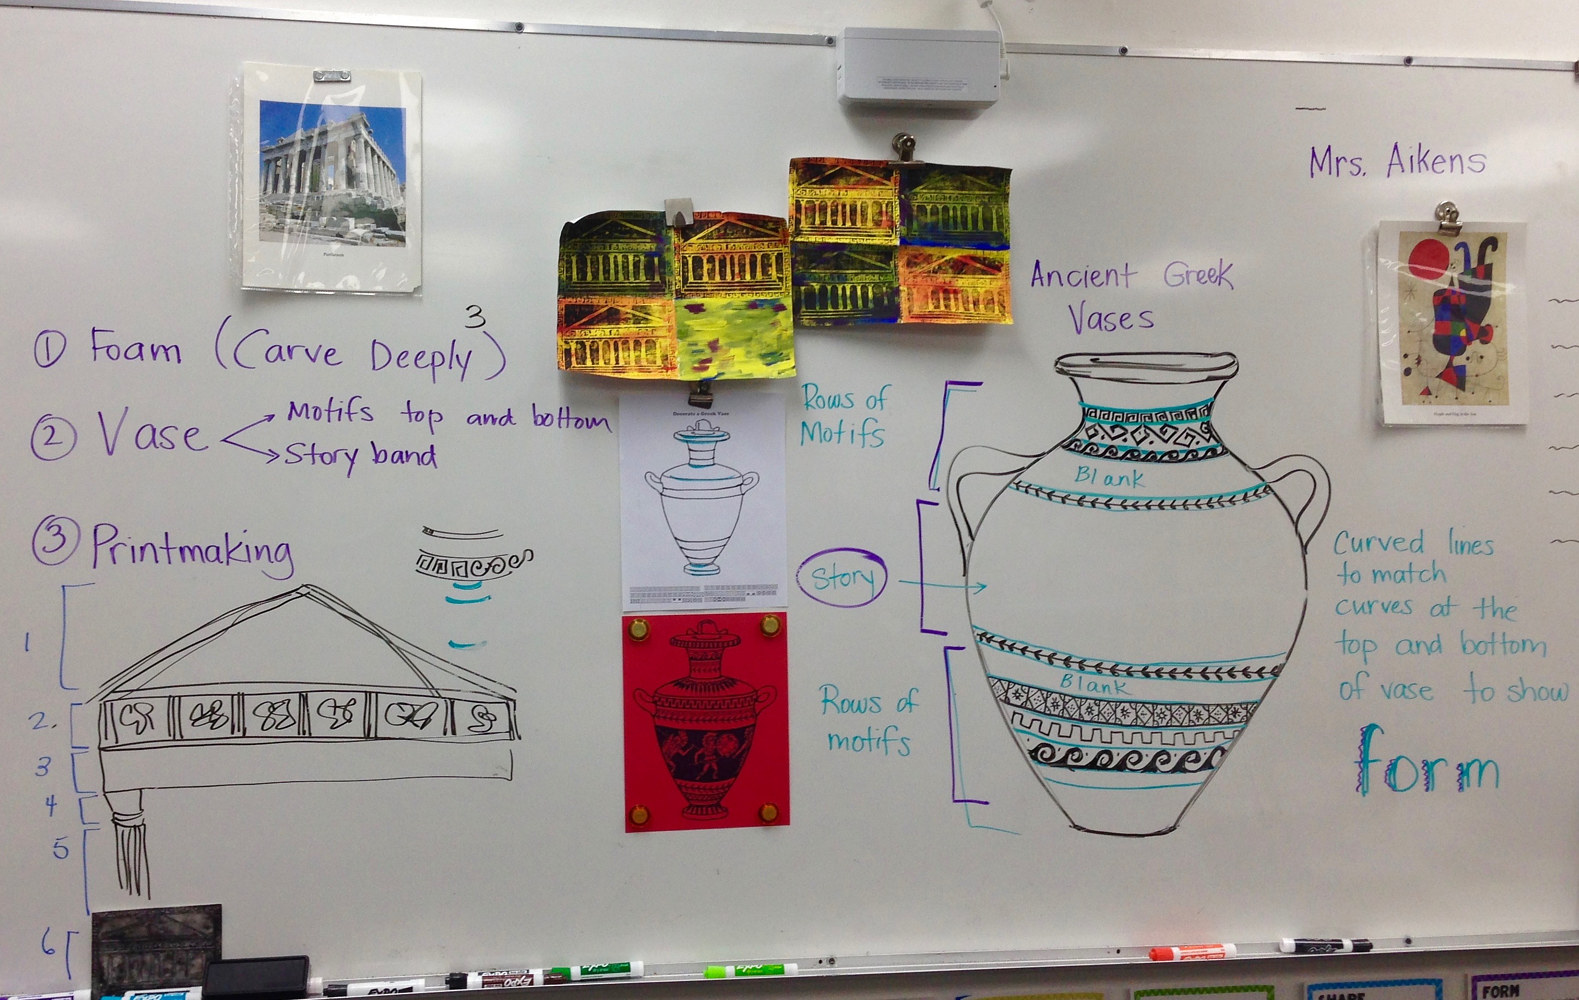 Teaching Ancient Greek Art to 2nd Graders by Linnie (Victoria) Aikens Lindsay